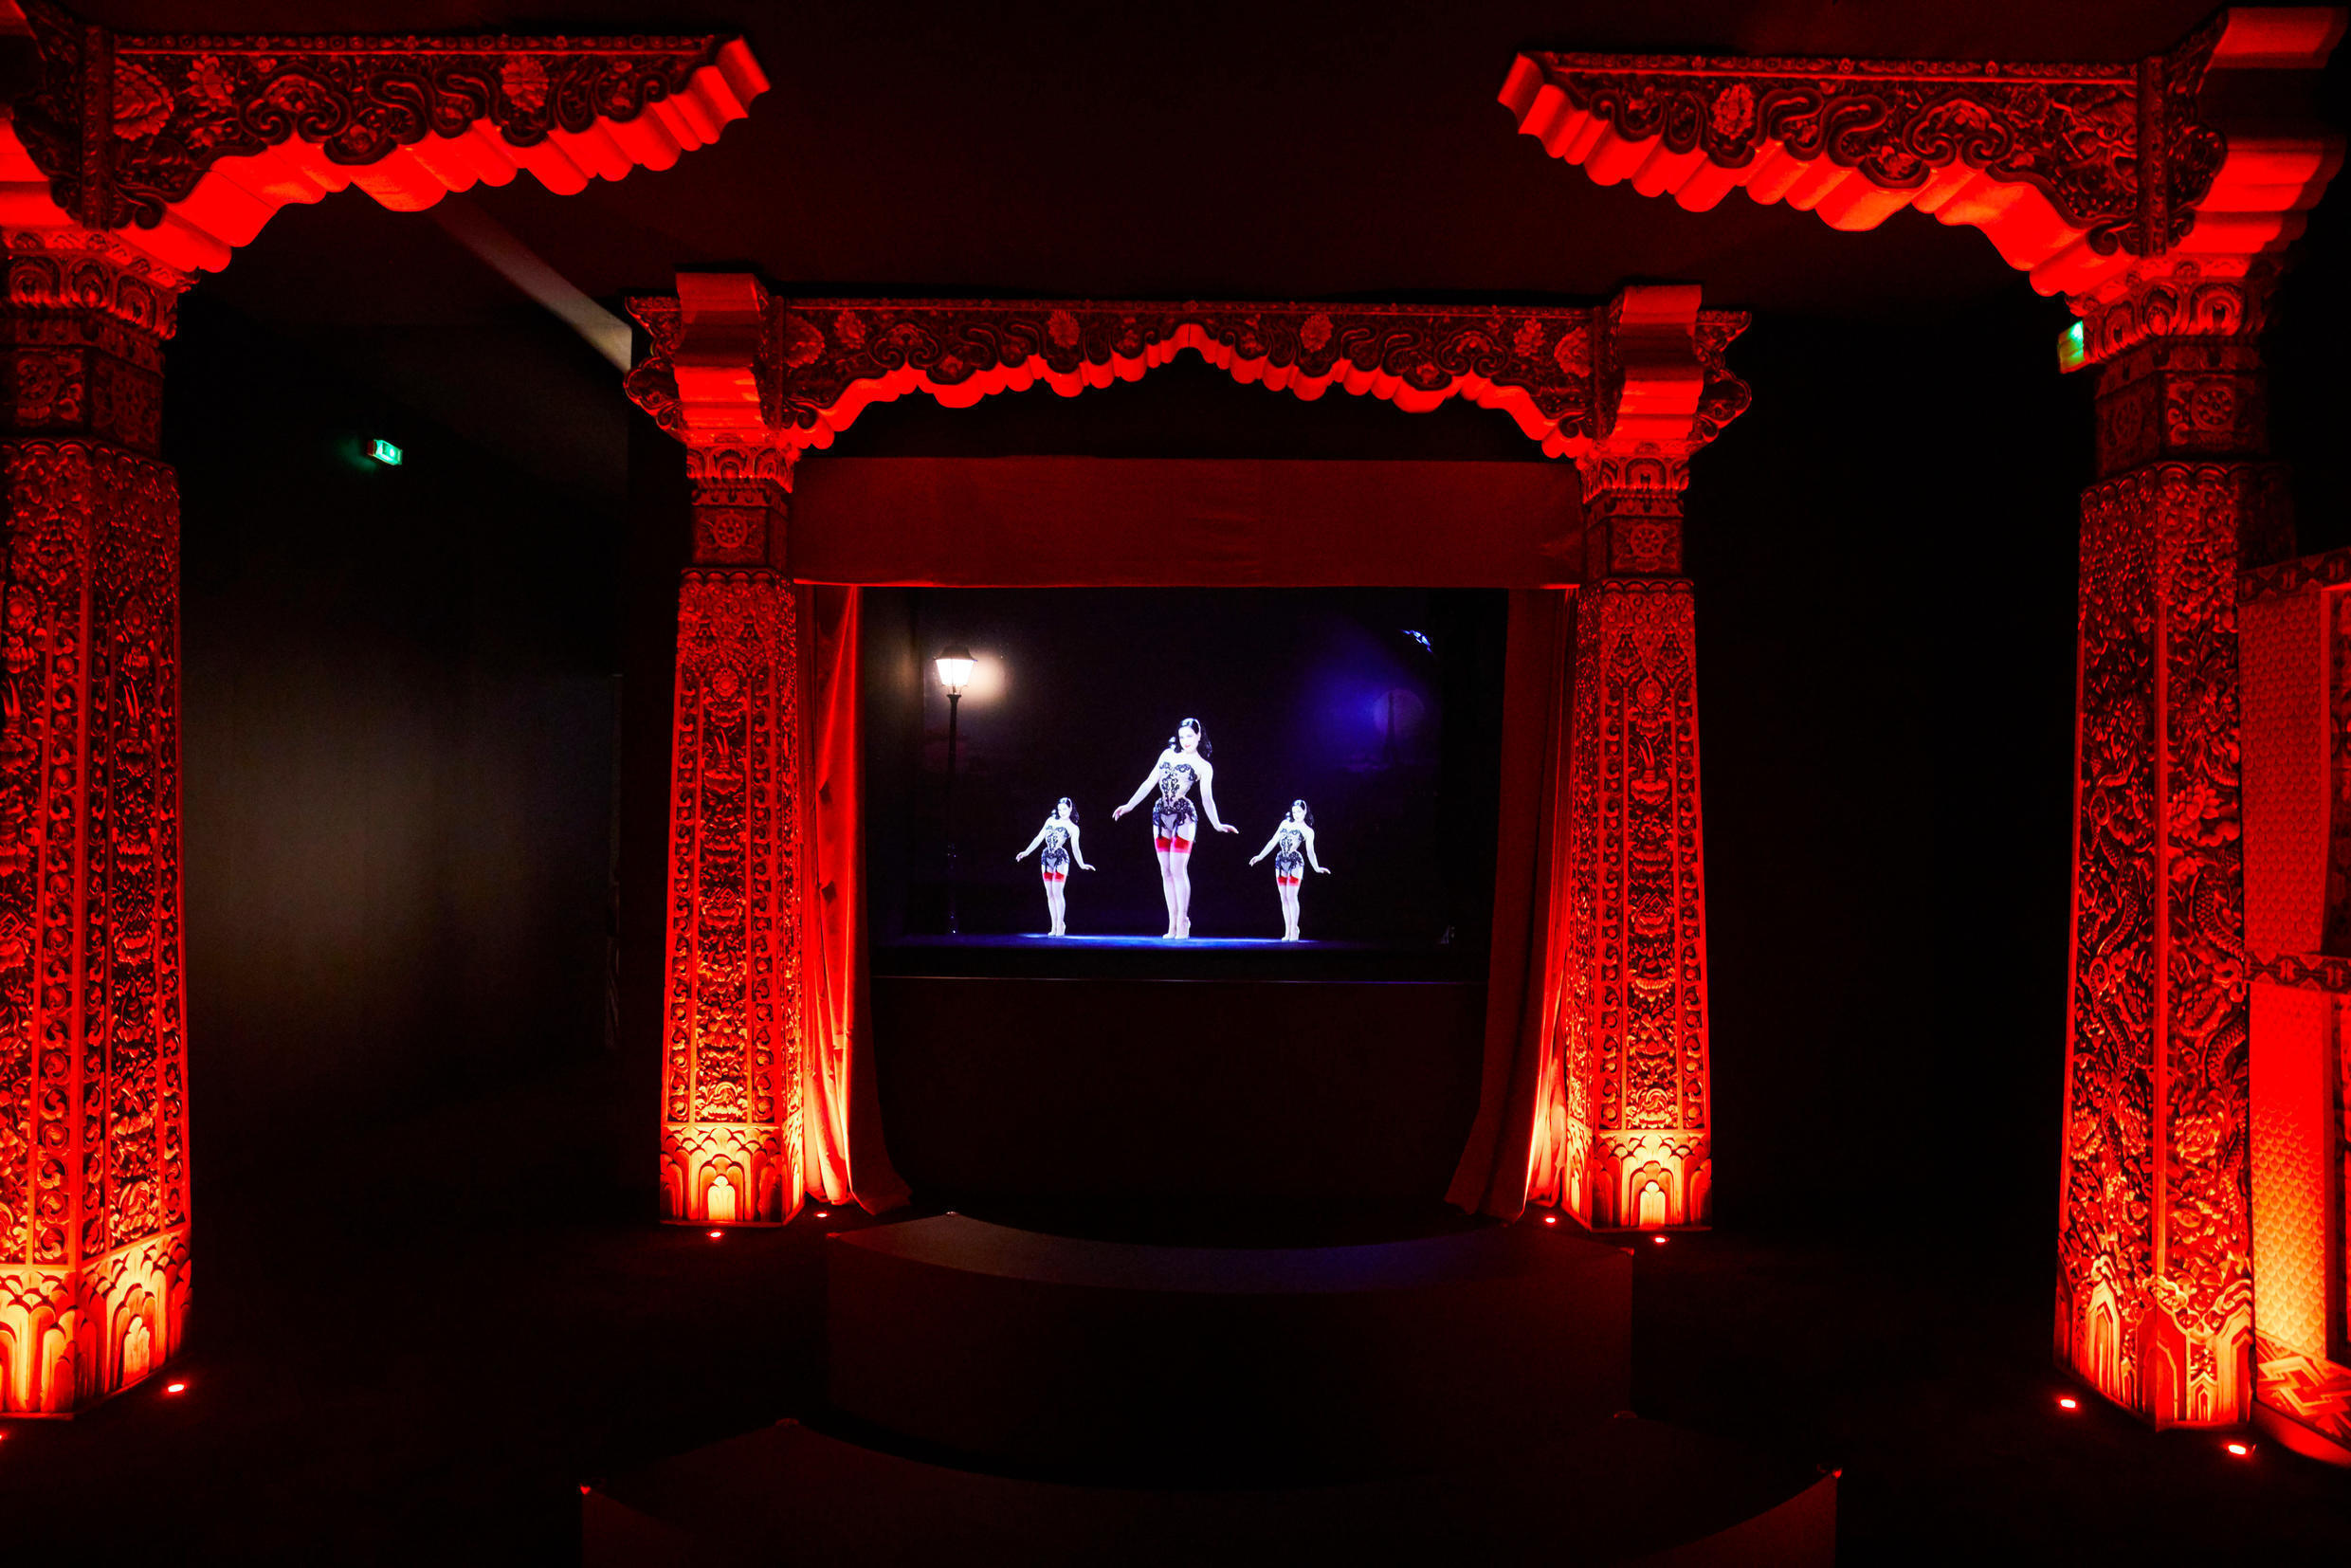 Burlesque dancer Dita von Teese features in a hologram performance in the Louboutin retrospective.